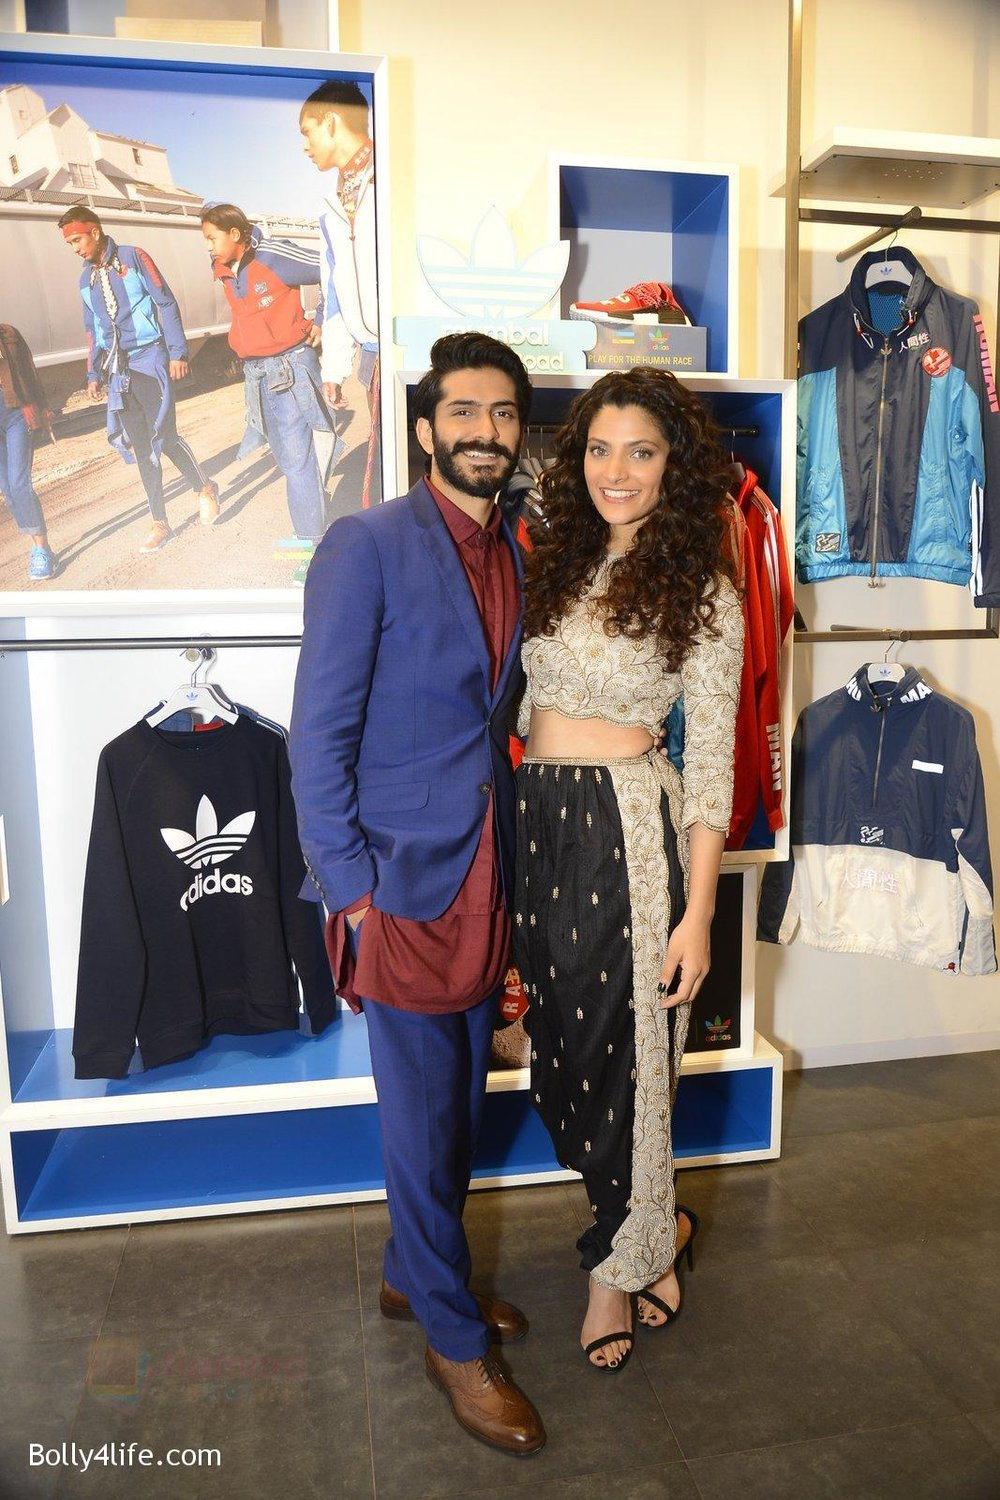 Harshvardhan-Kapoor-and-Saiyami-Kher-at-Adidas-Event-in-Mumbai-on-30th-Sept-2016-46.jpg